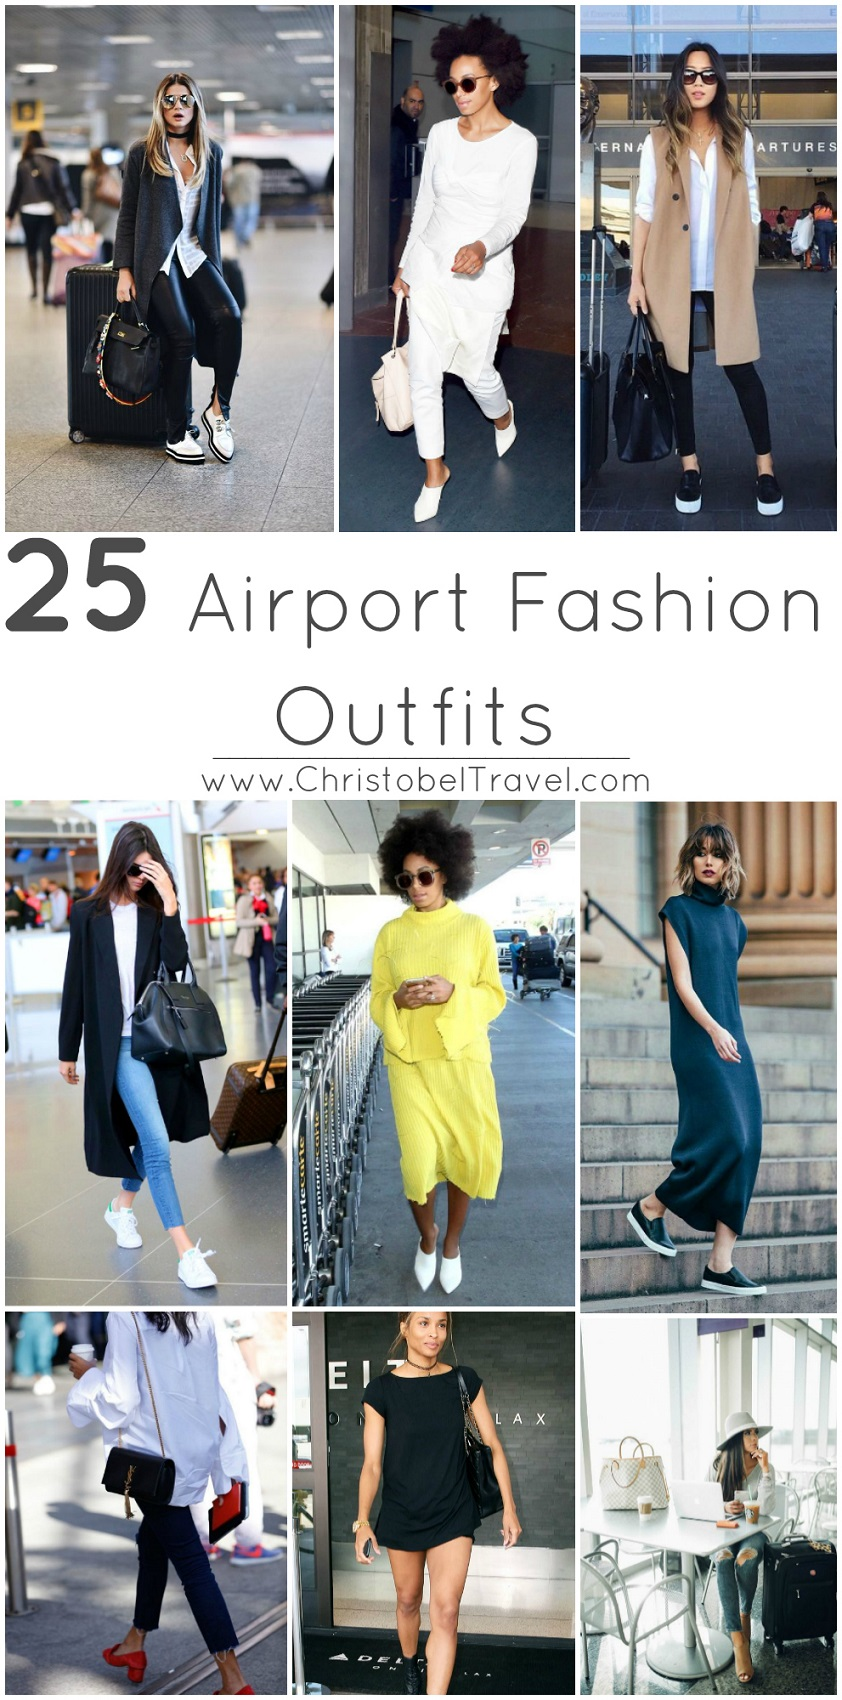 25 Airport Fashion Outfits to Travel in Style by Christobel Travel